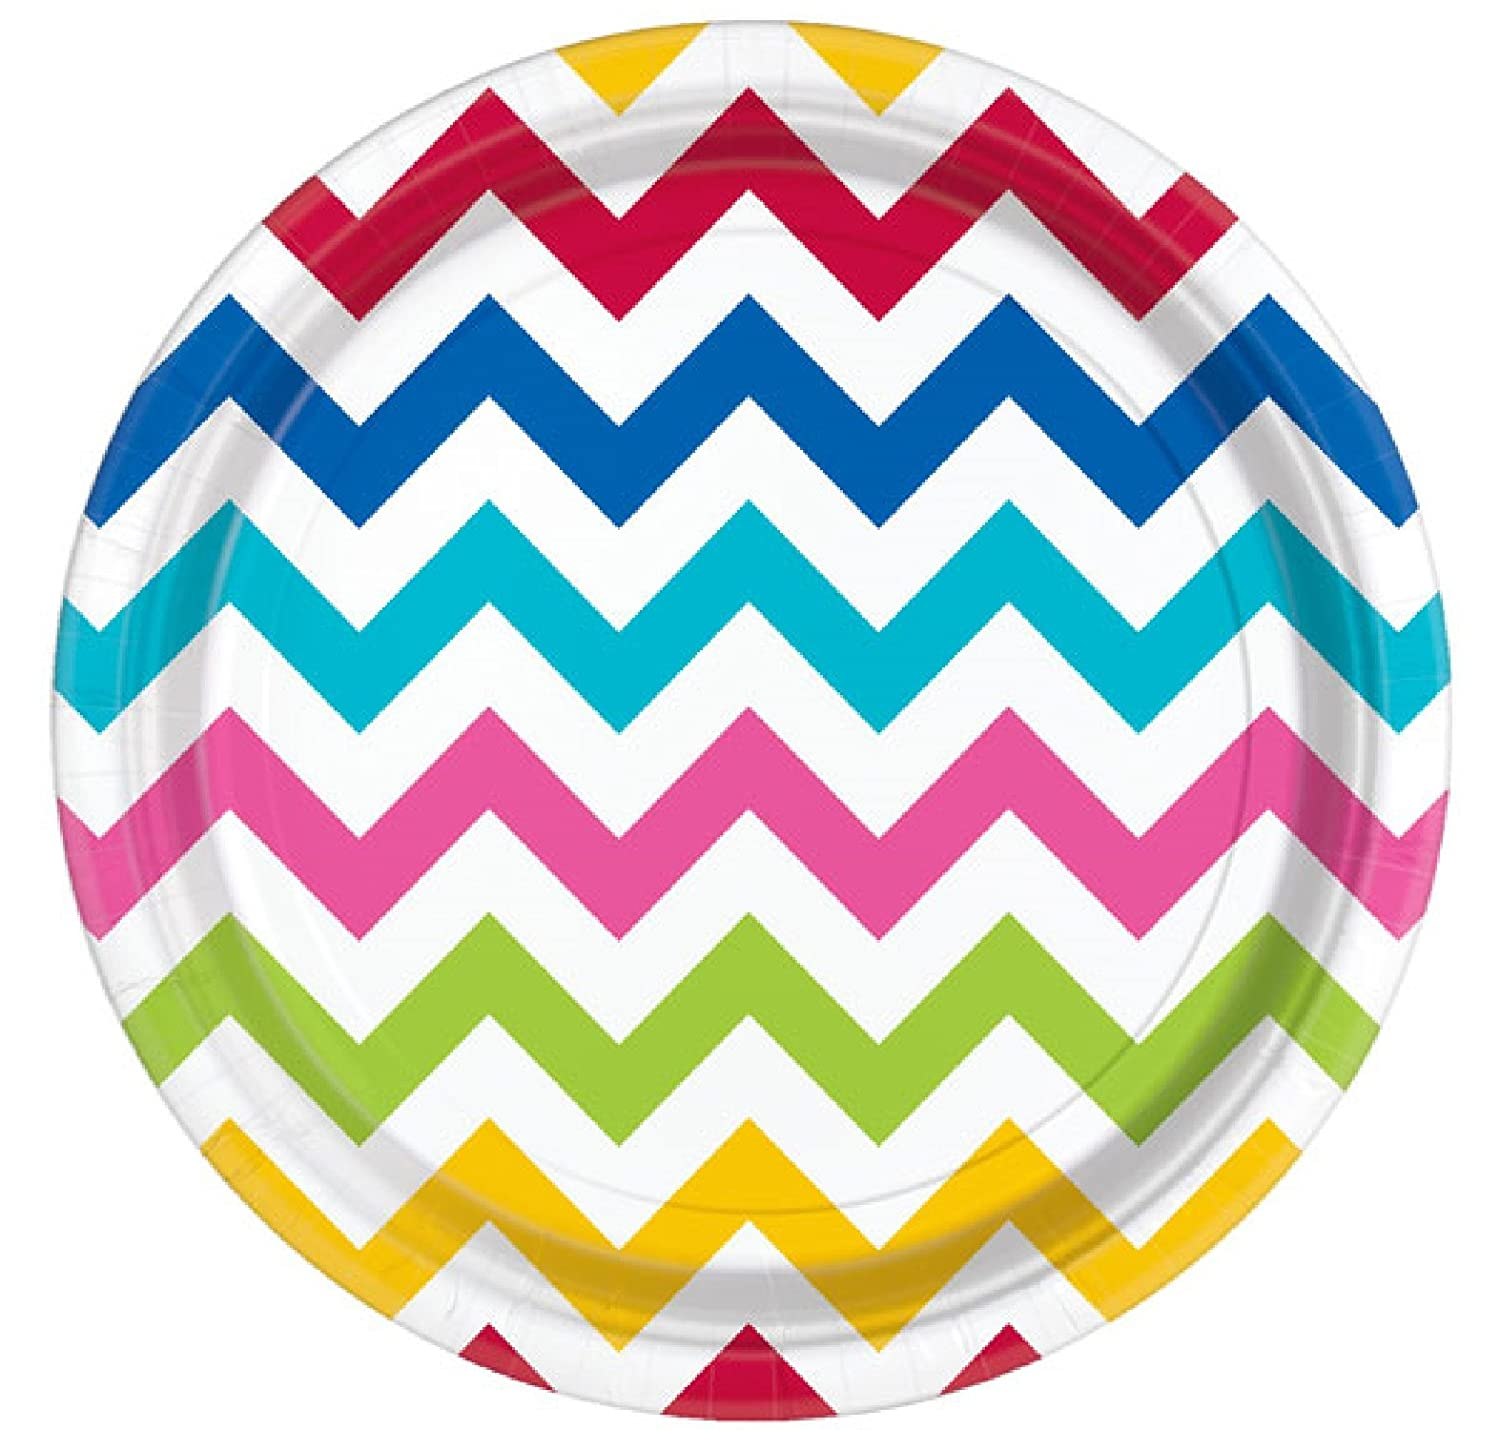 Rainbow Chevron Polka Dot Spotty 12ft Bunting Garland Banner Colourful Bright Girls Boys Ladies Mens Birthday Party Celebration Event Summer BBQ Beach Party Paper Tableware Decorations Accessories (Bunting) Fancy Me